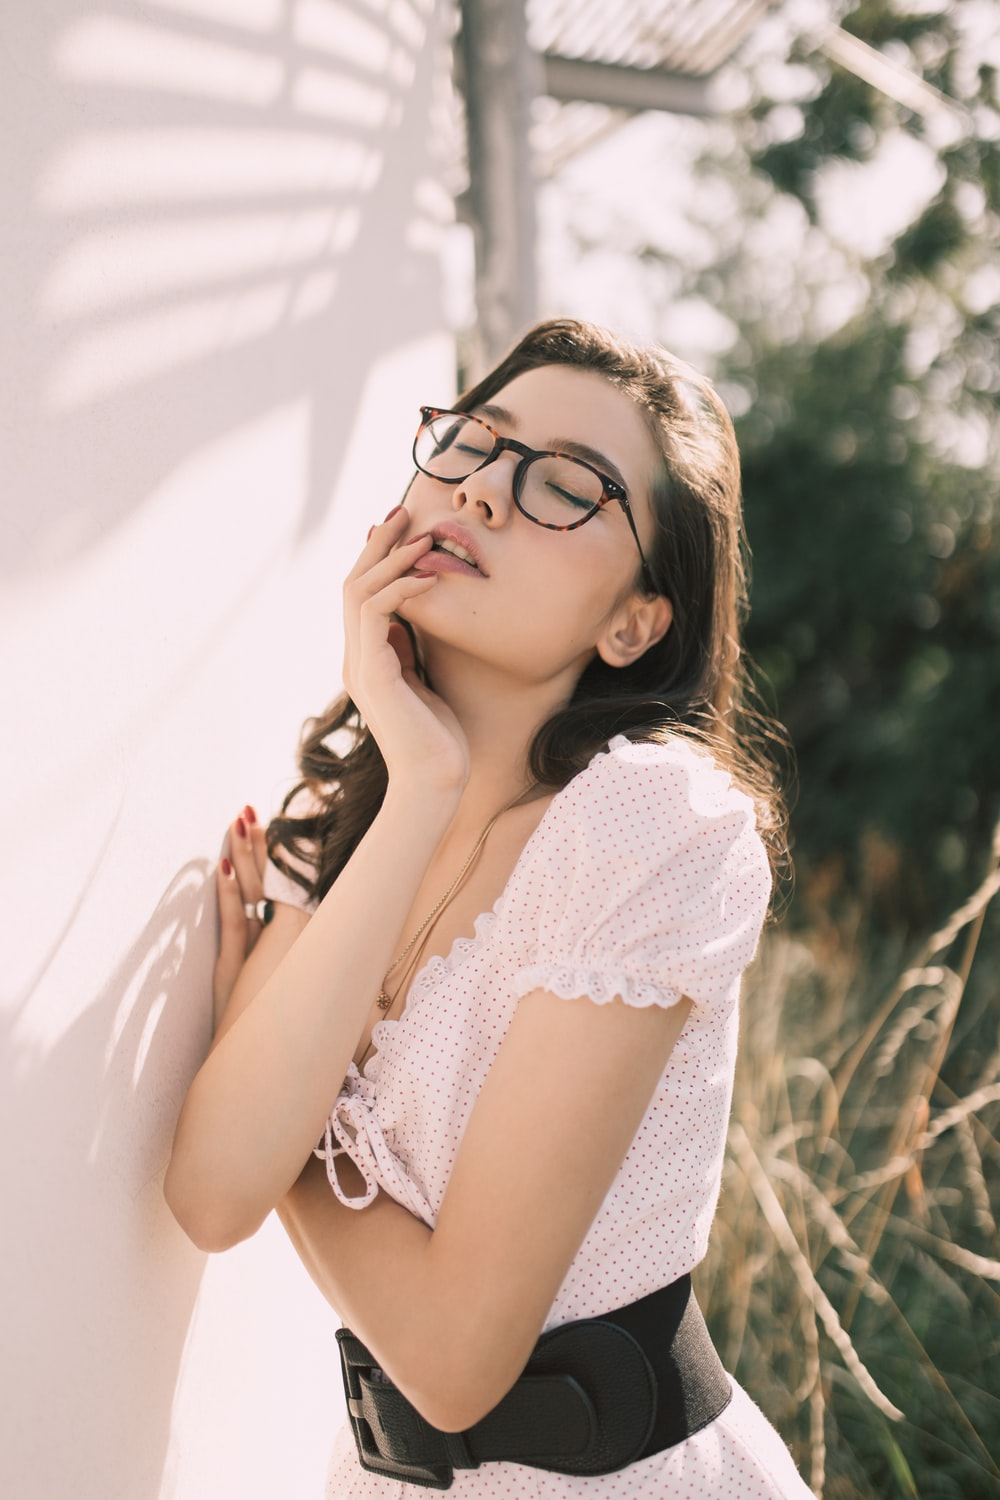 woman in white and black top wearing eyeglasses